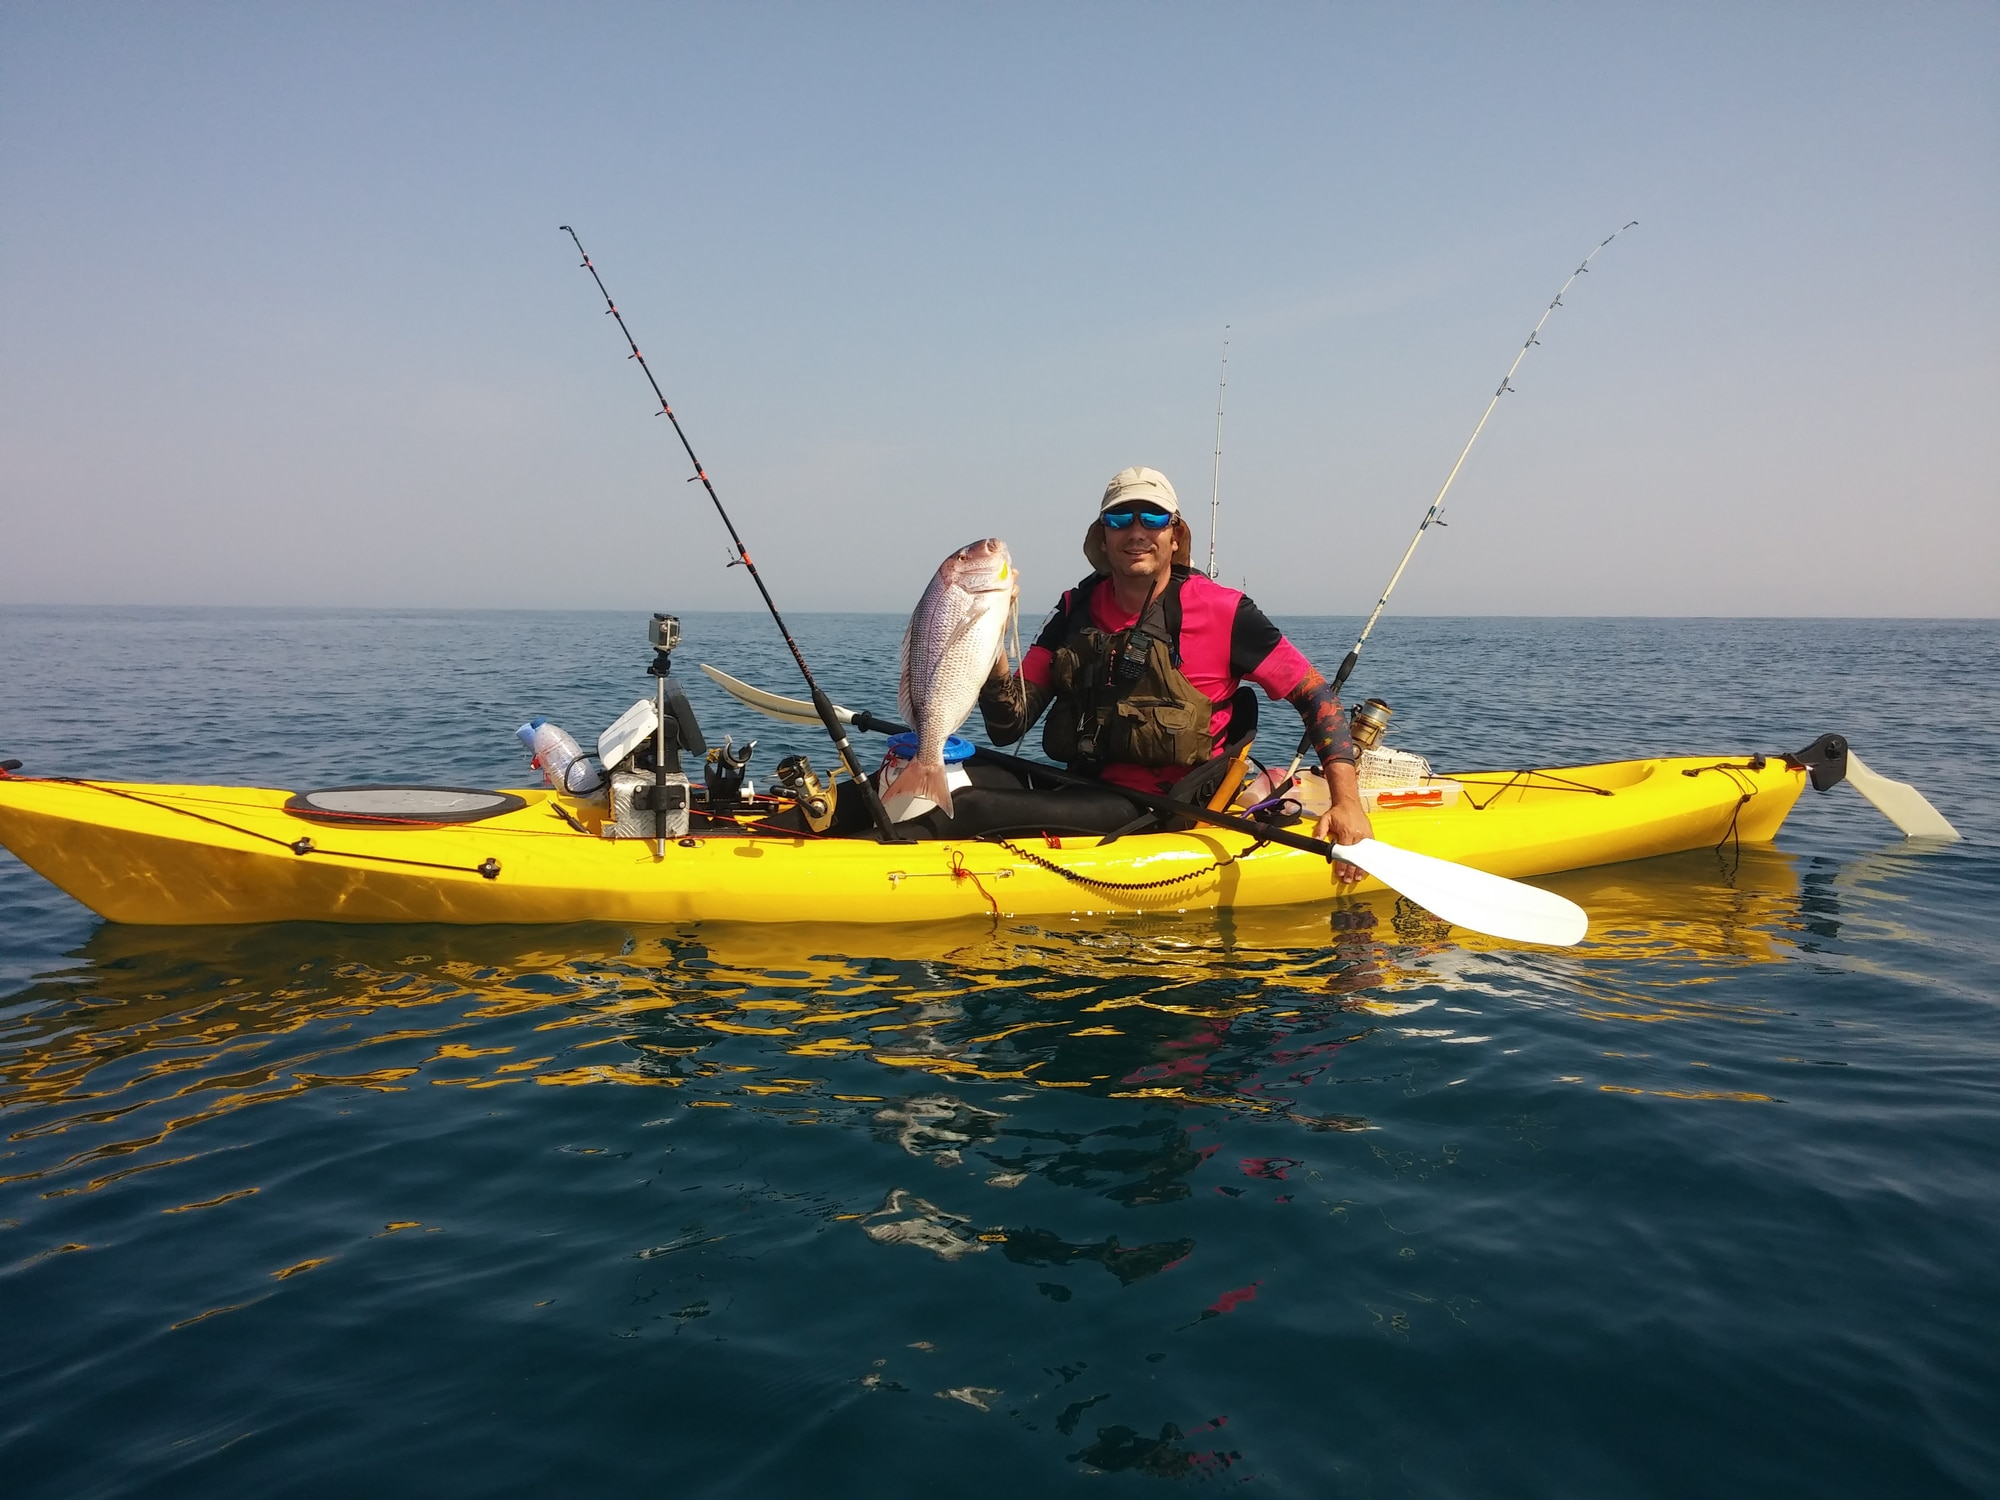 Guy in Yellow Kayak holds up a hefty Fish